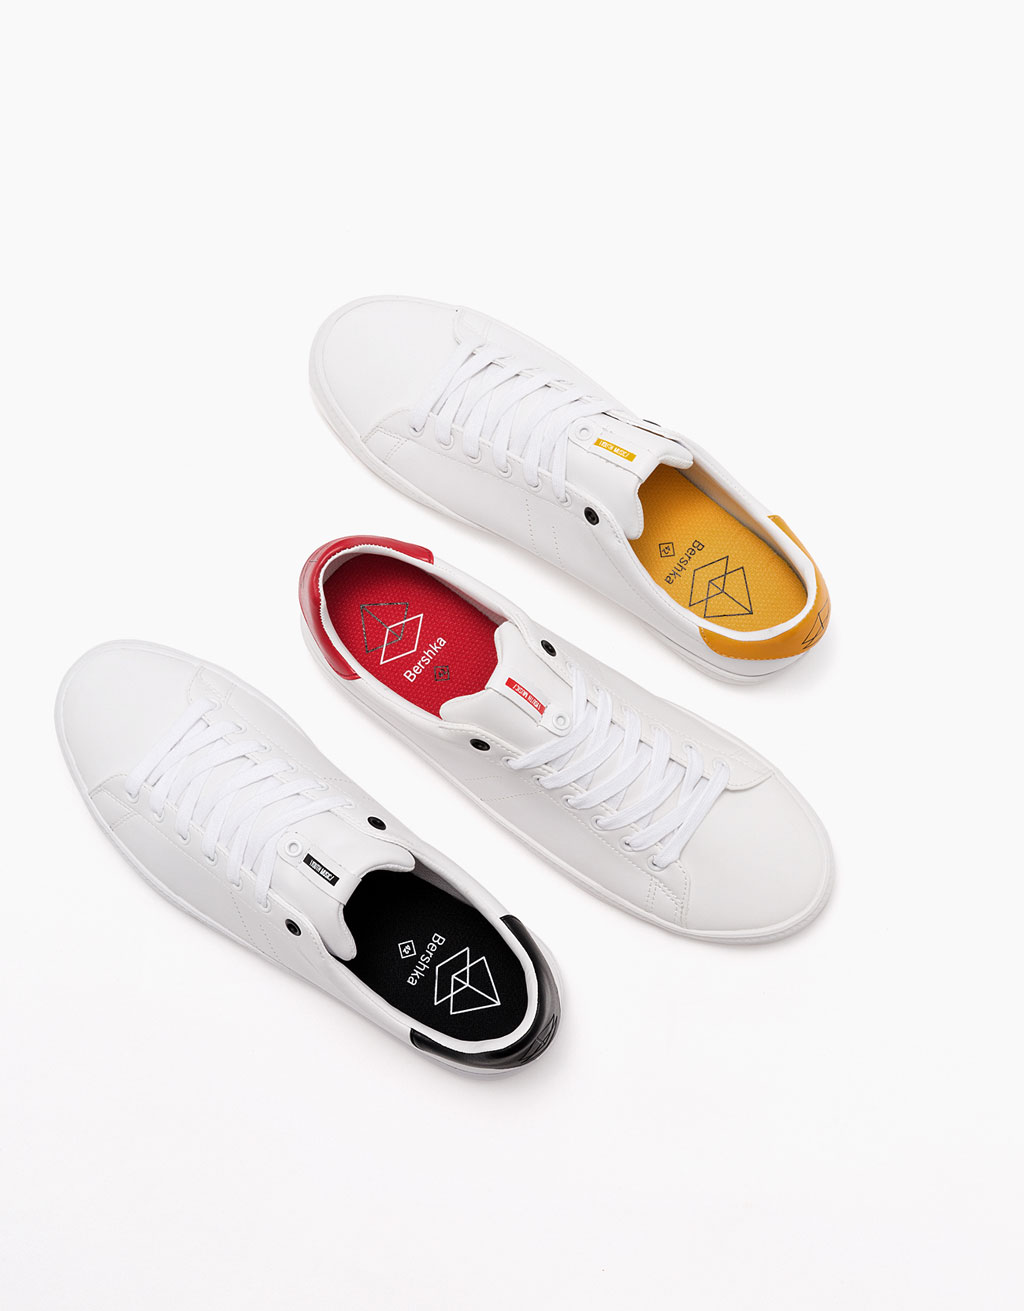 Men's basic coloured sole sneakers